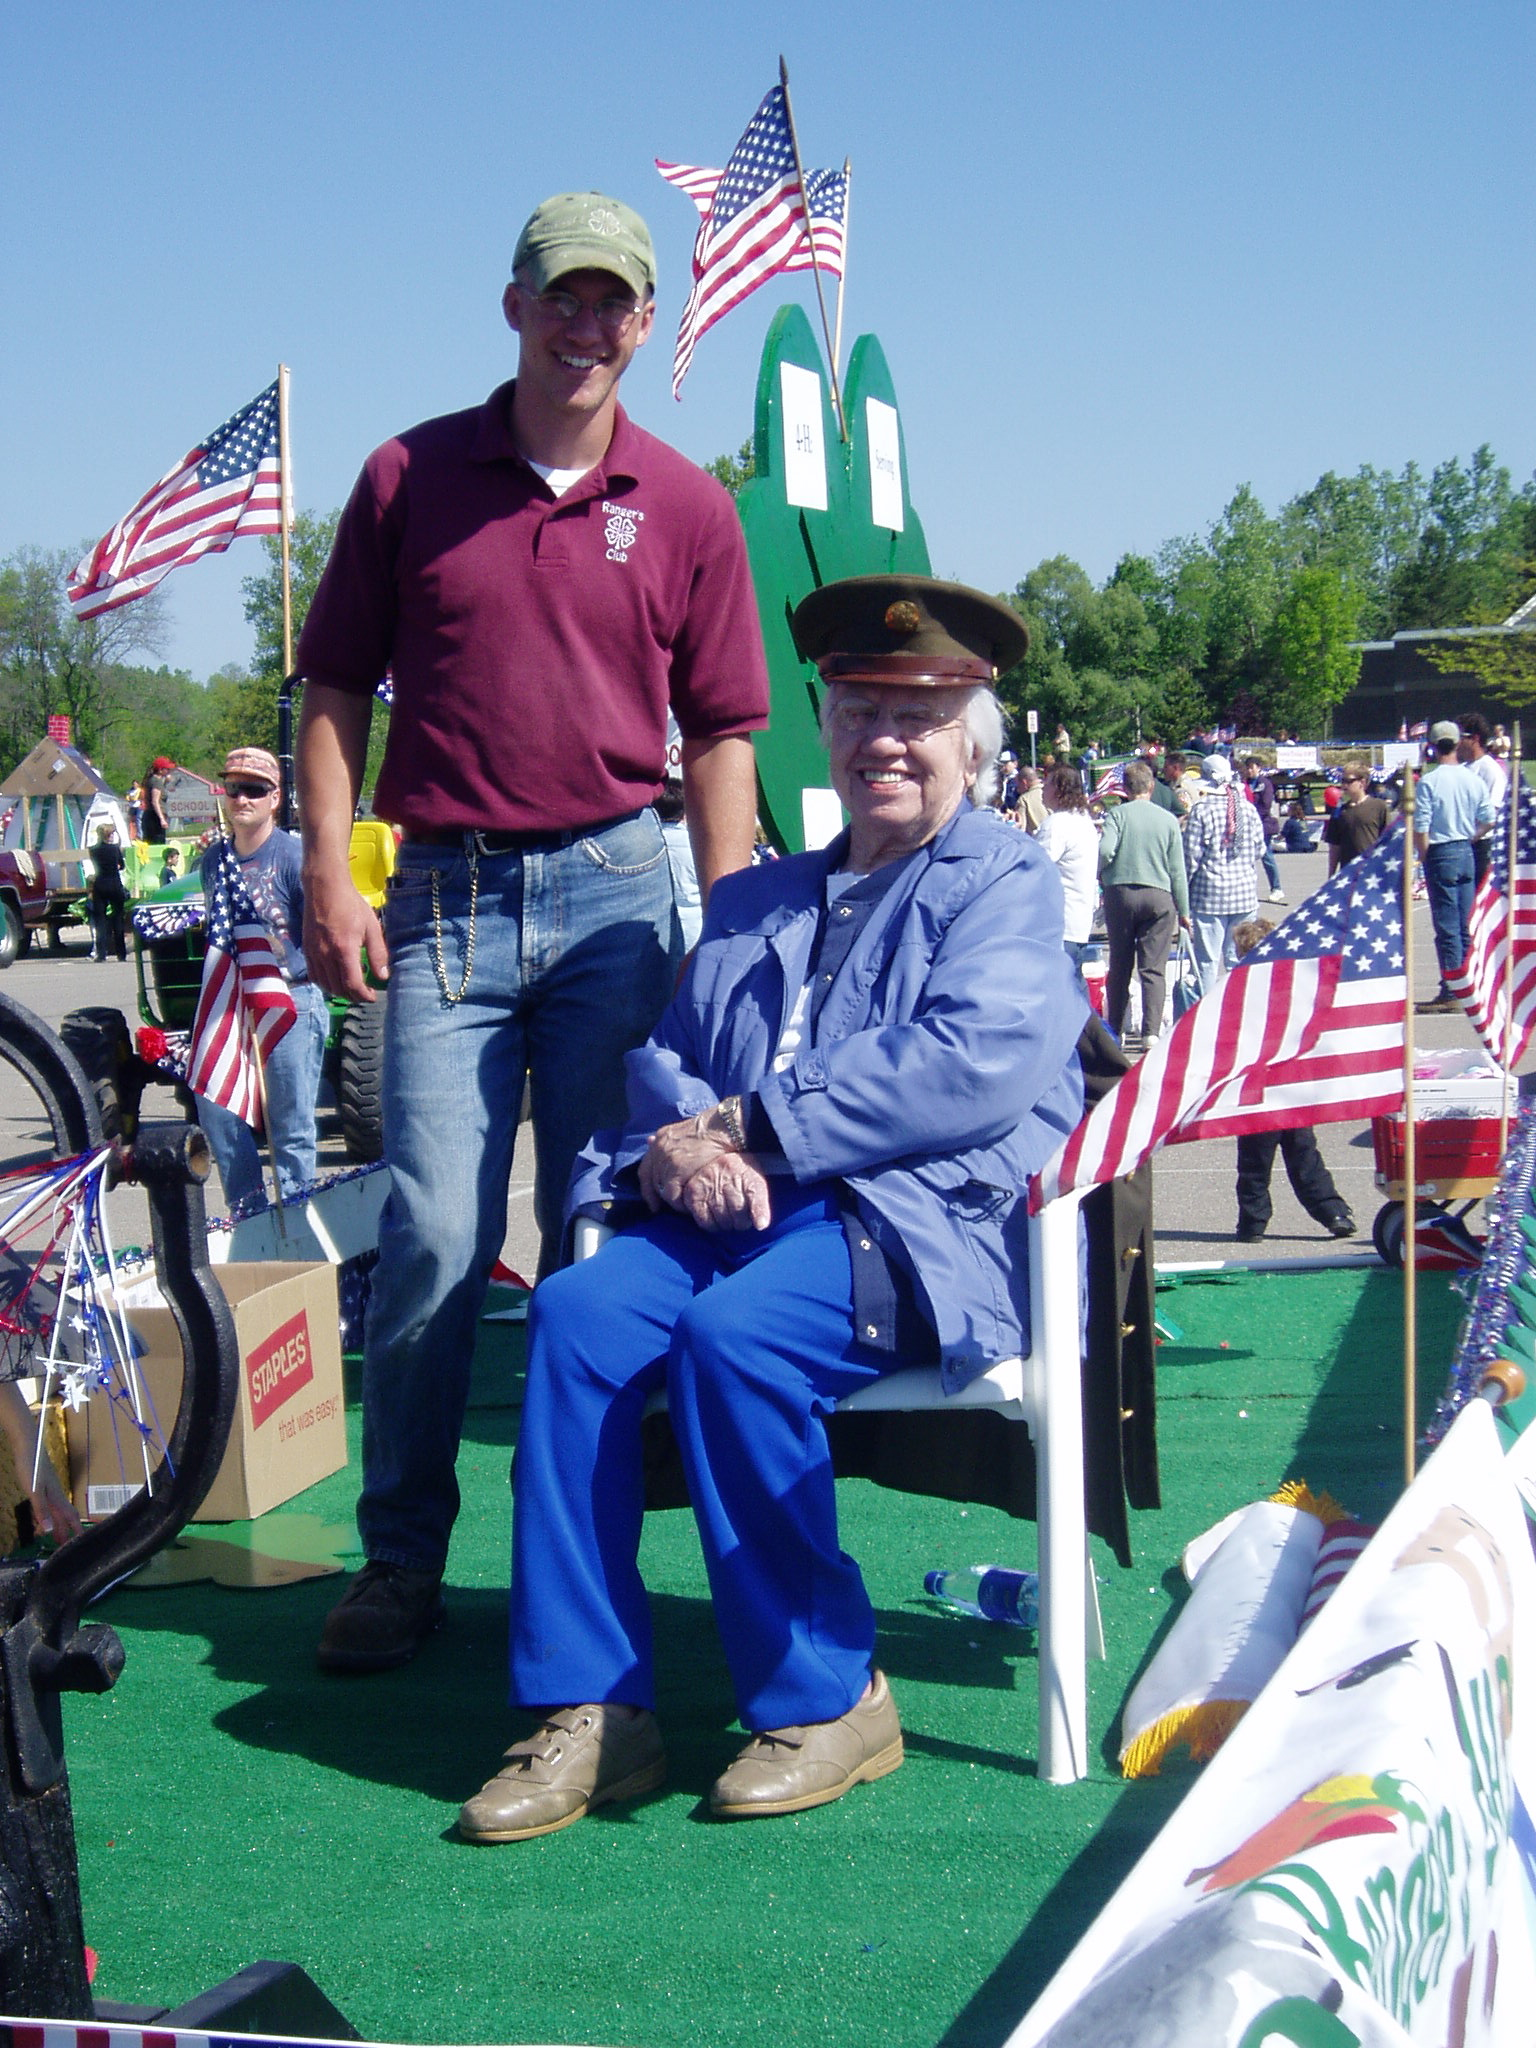 Steven and Grandma on the float in the parade